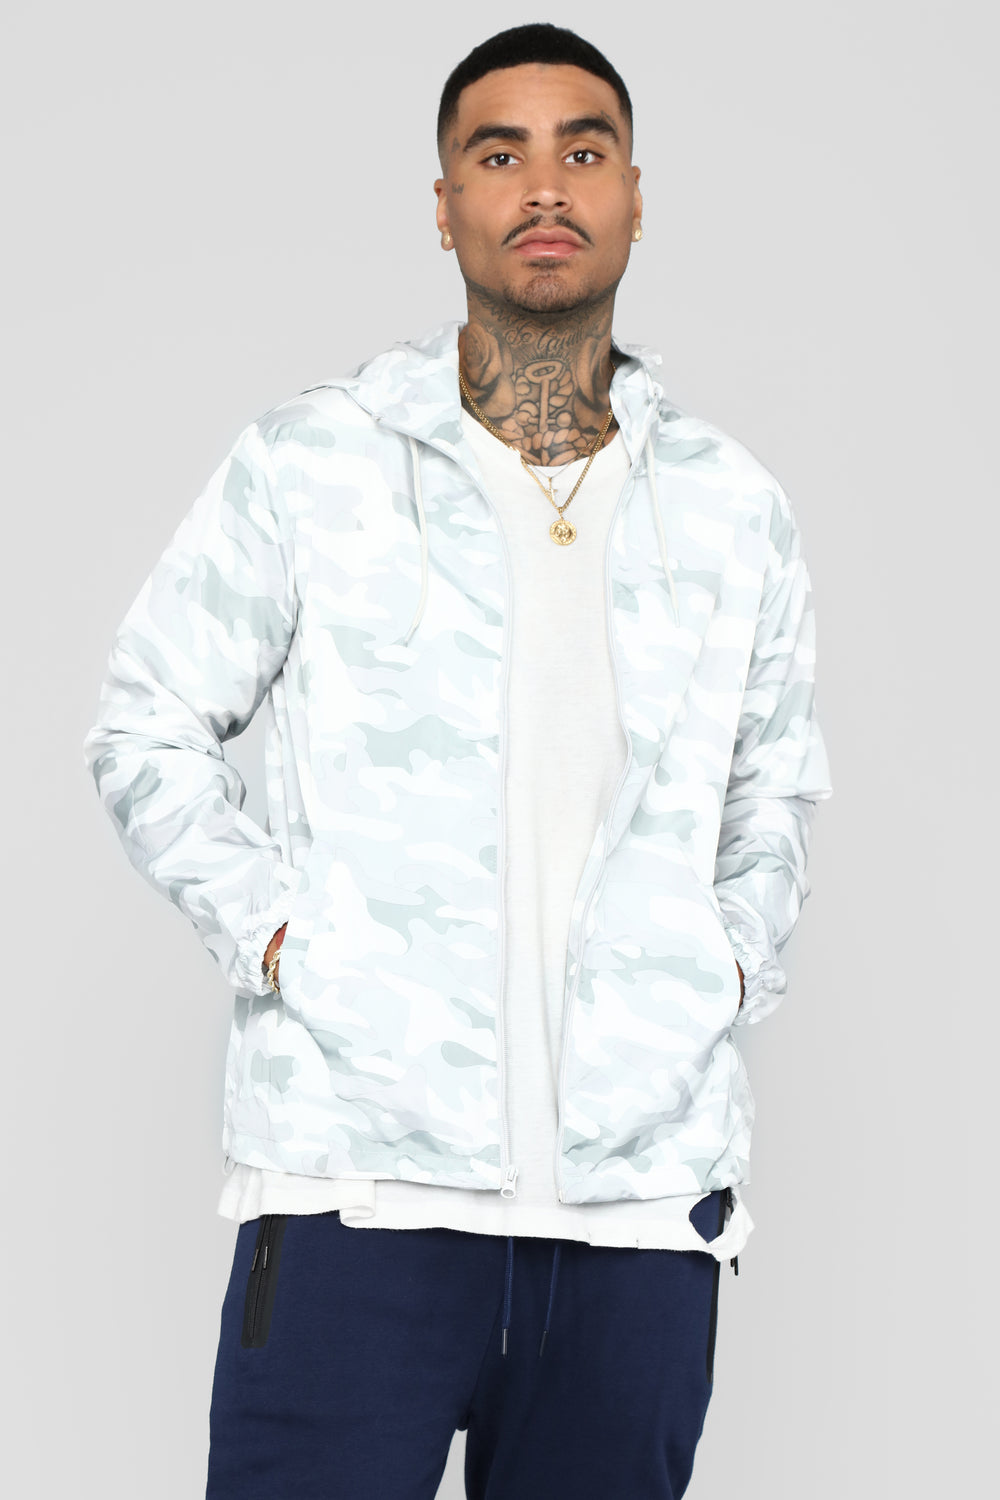 Stay Incognito Windbreaker - White